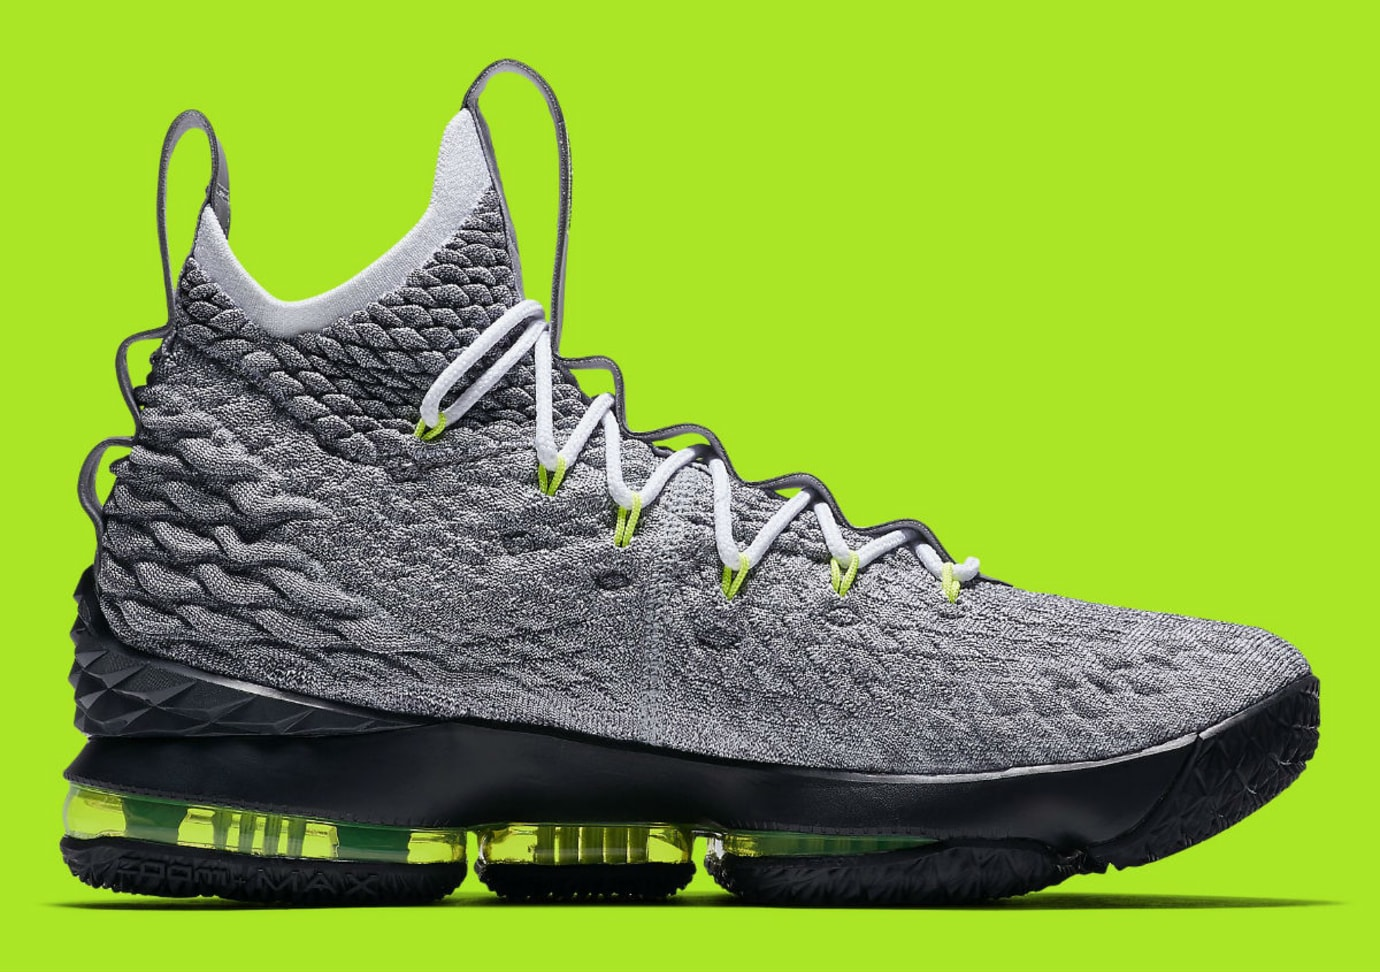 promo code abc80 35008 Nike LeBron 15 Air Max 95 Neon Release Date AR4831-001 Medial